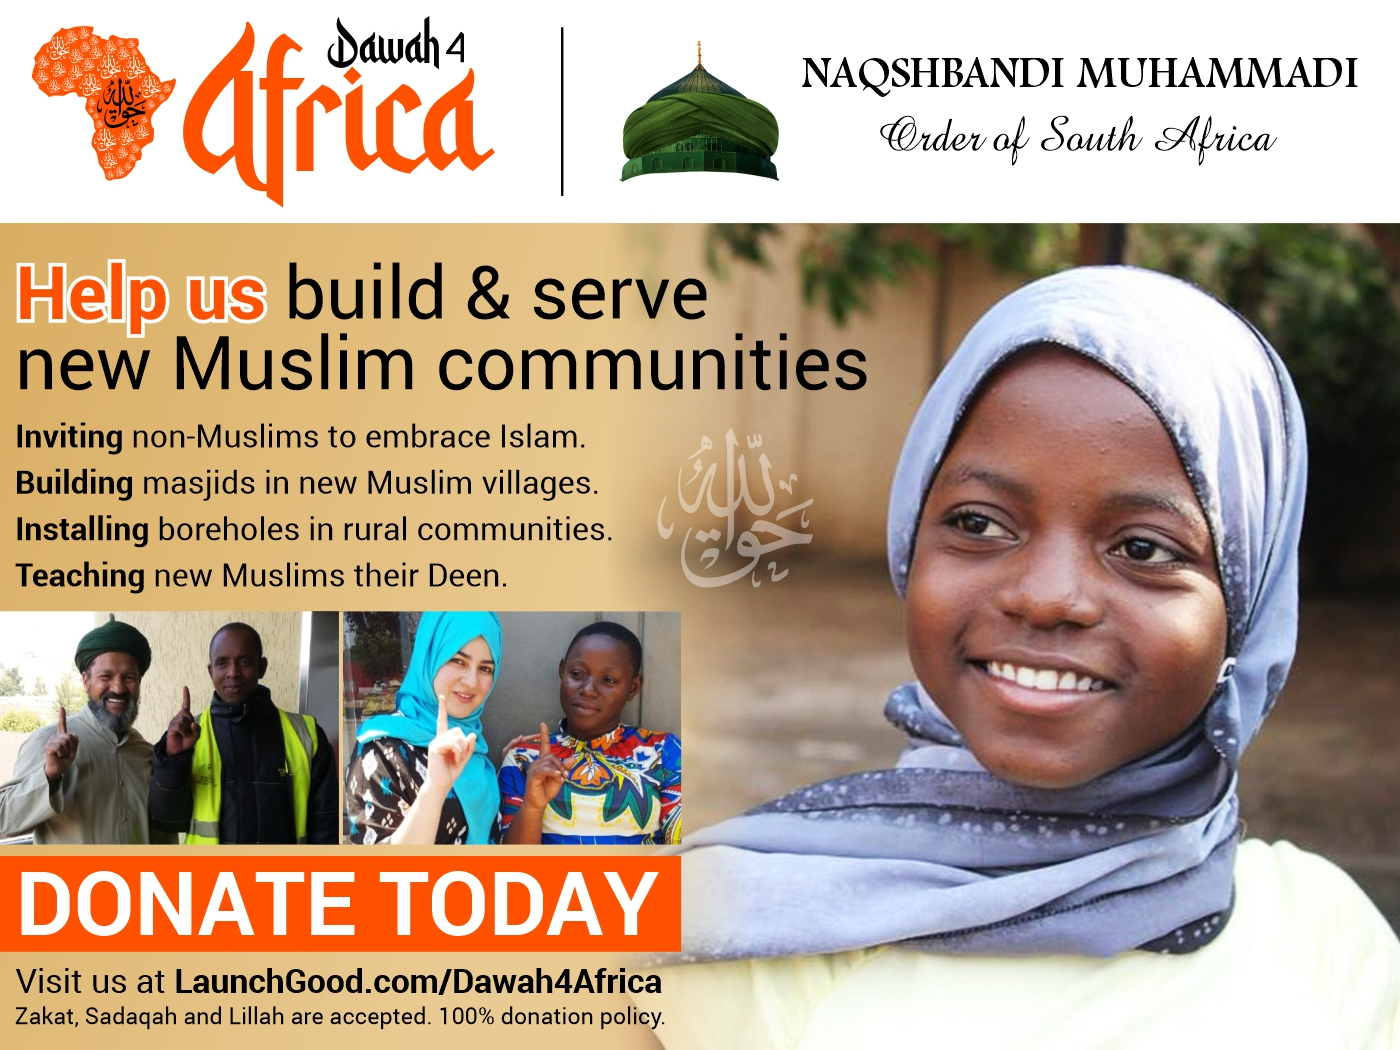 malawi-mosque-building